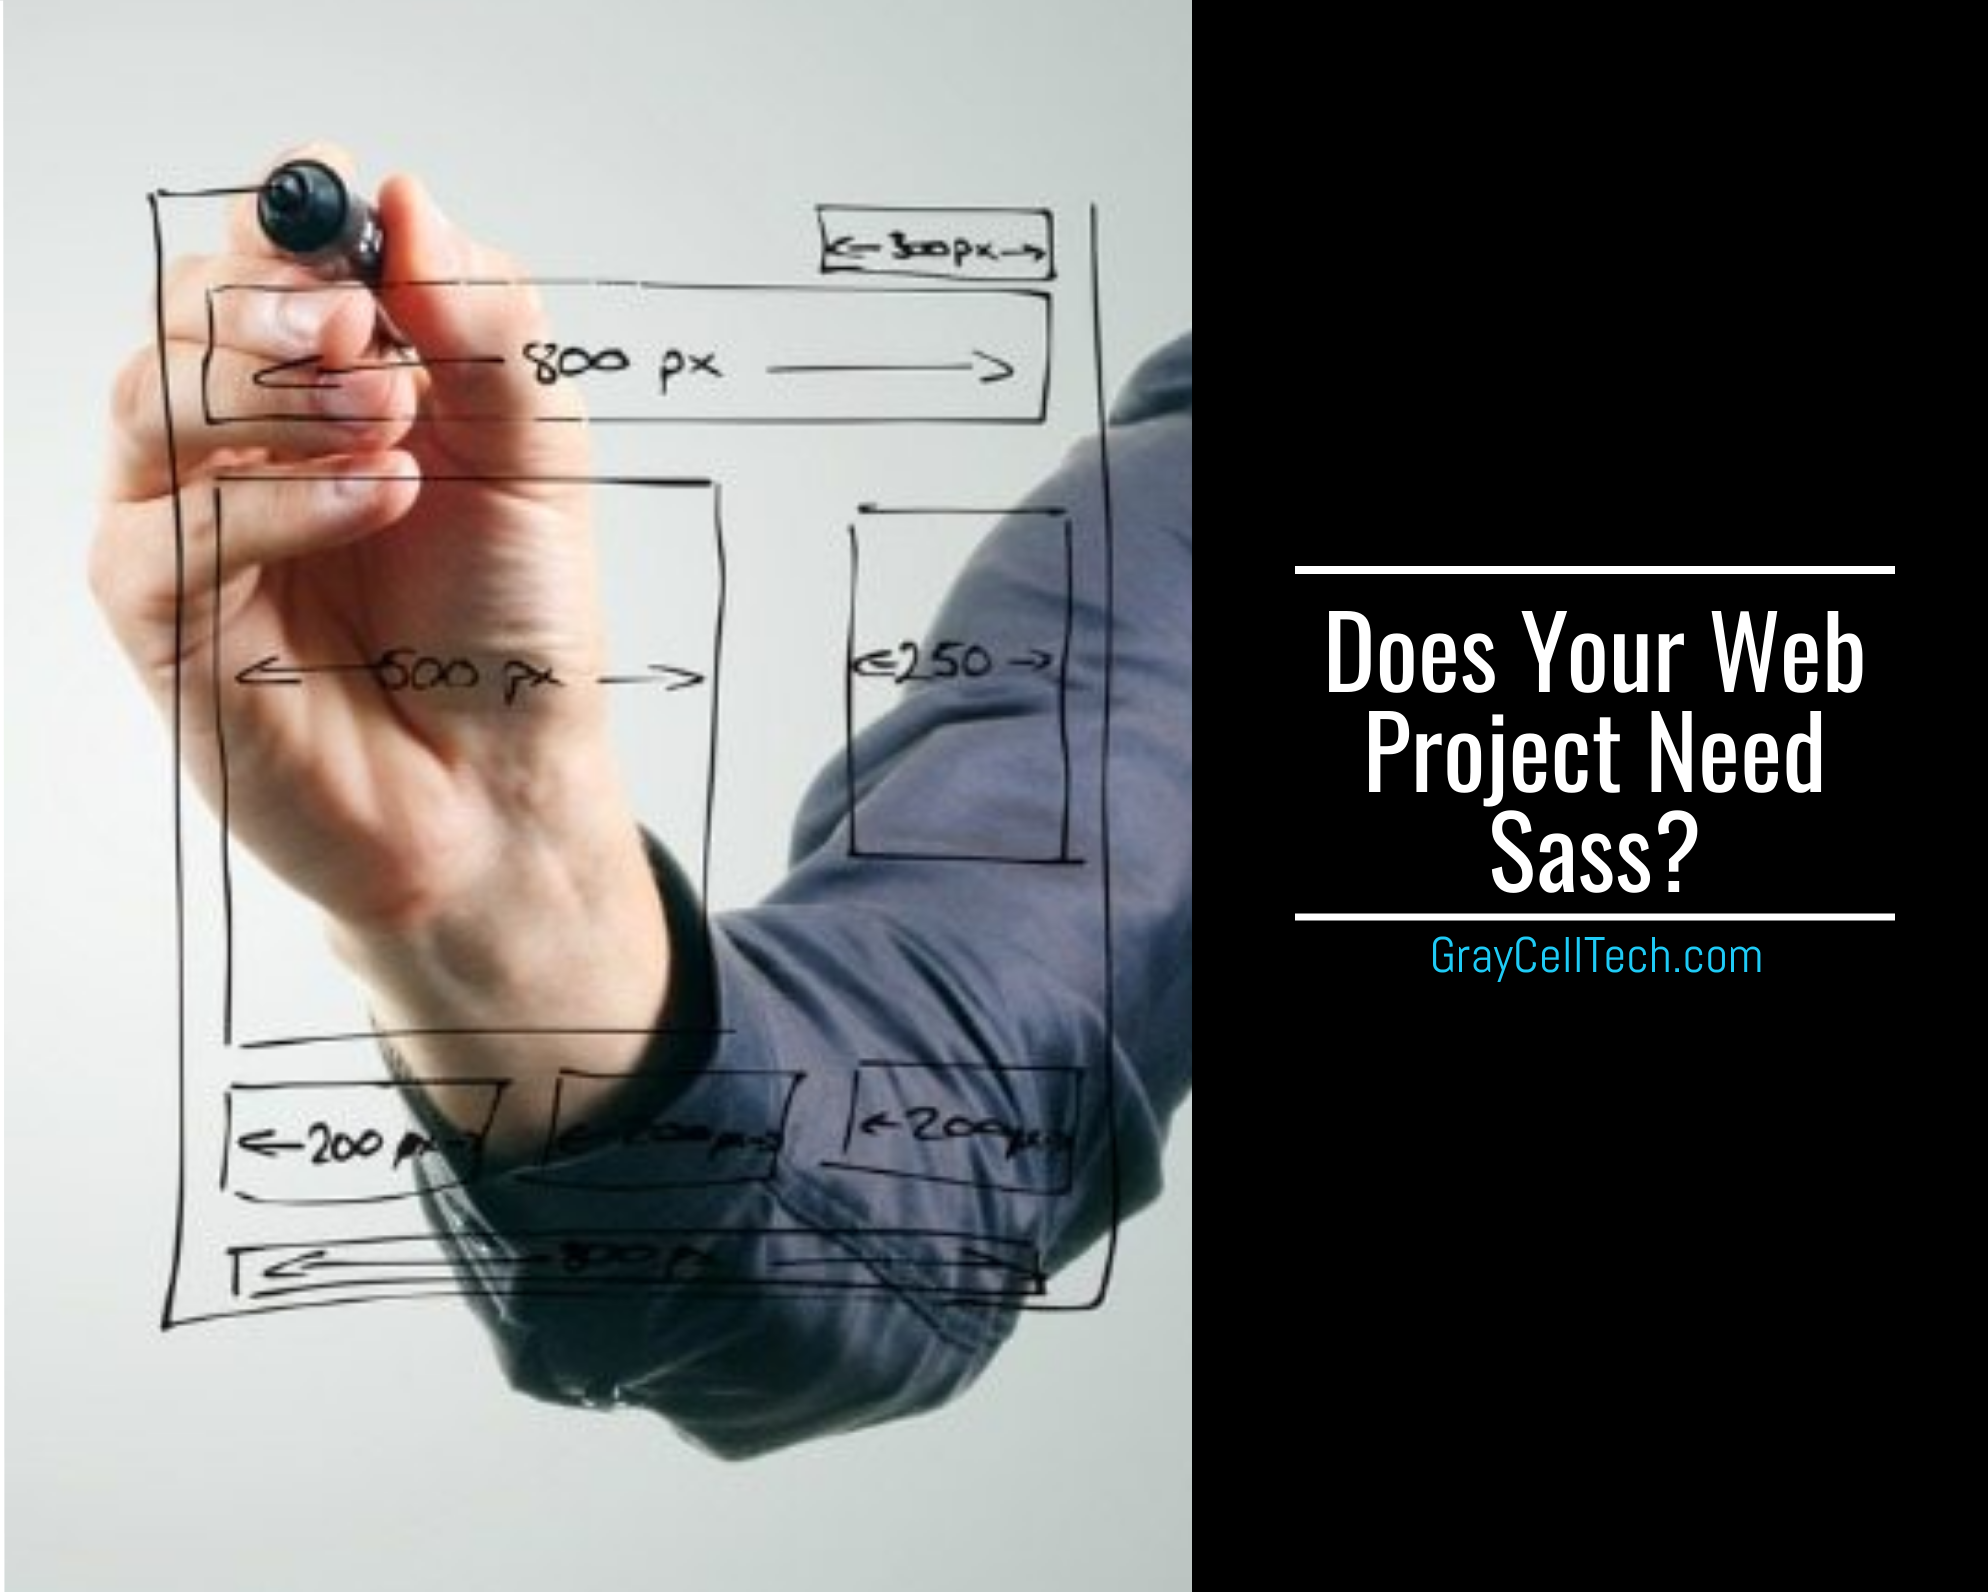 Does Your Web Project Need Sass?